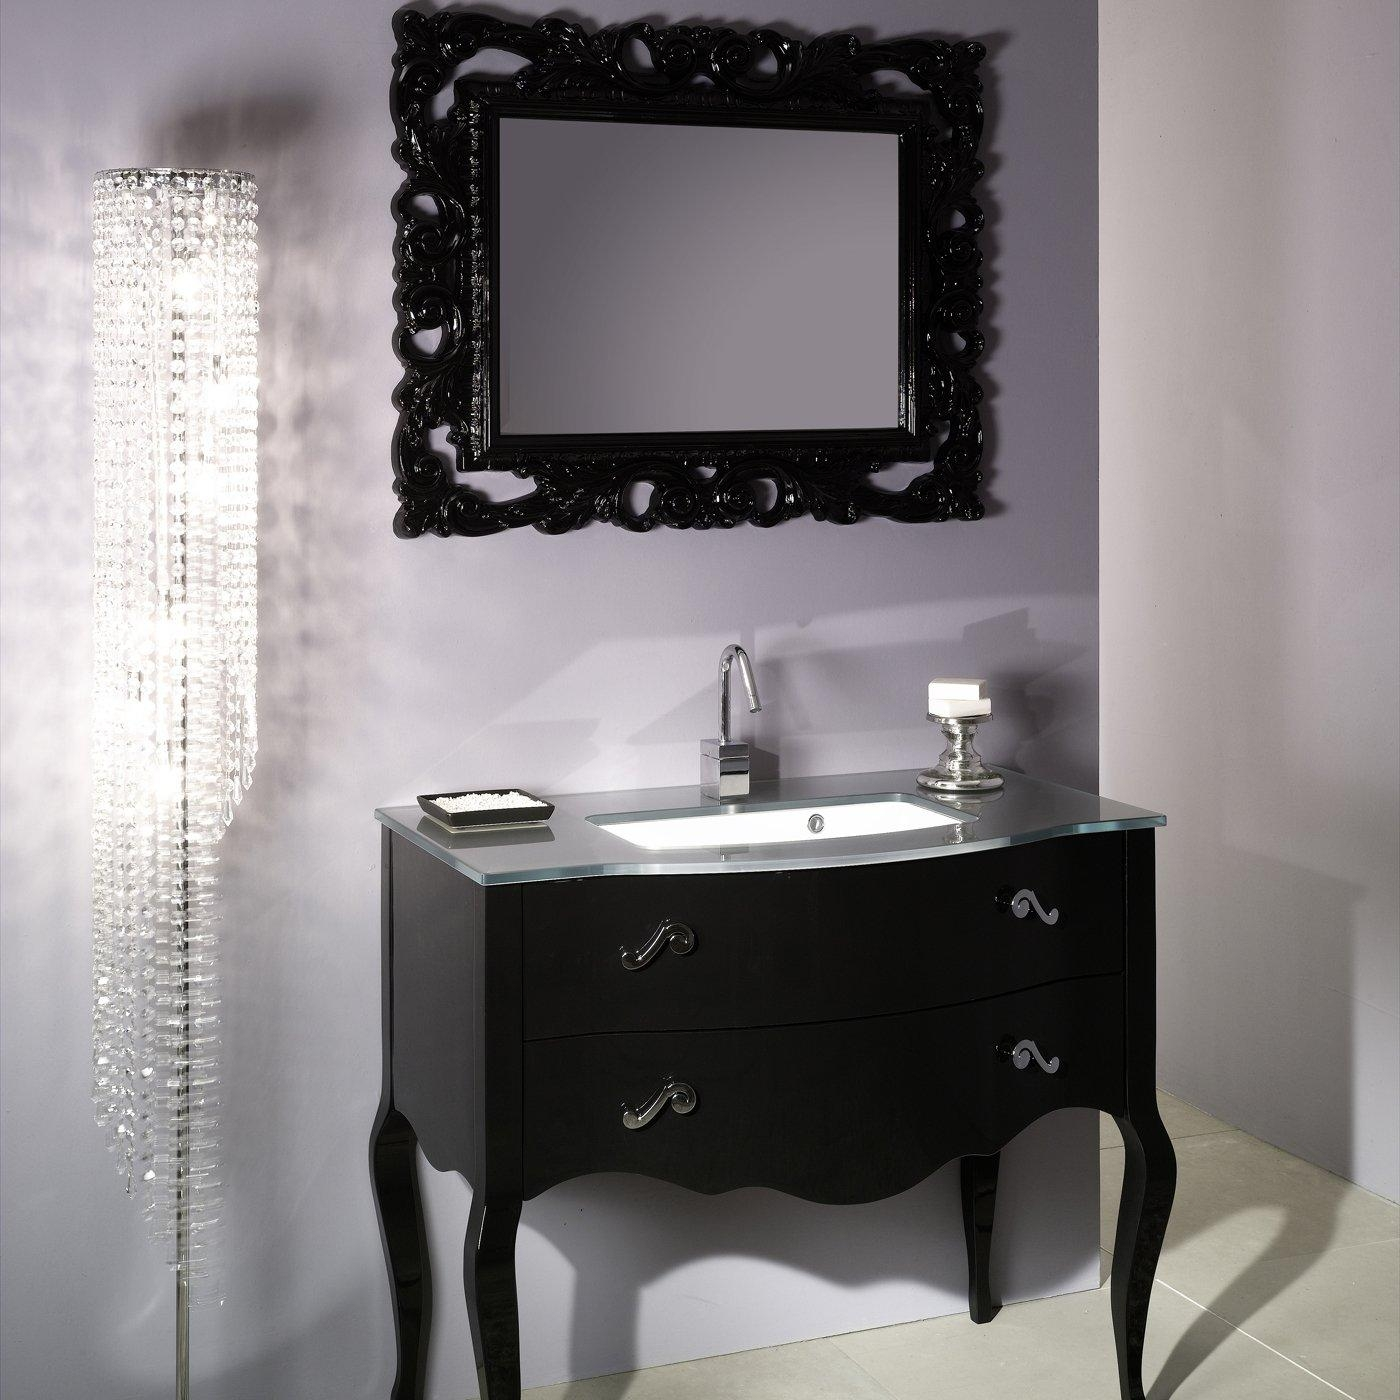 Large Black Framed Mirror 5 Inspiring Style For Black Metal Framed For Large Black Vintage Mirror (Image 7 of 20)